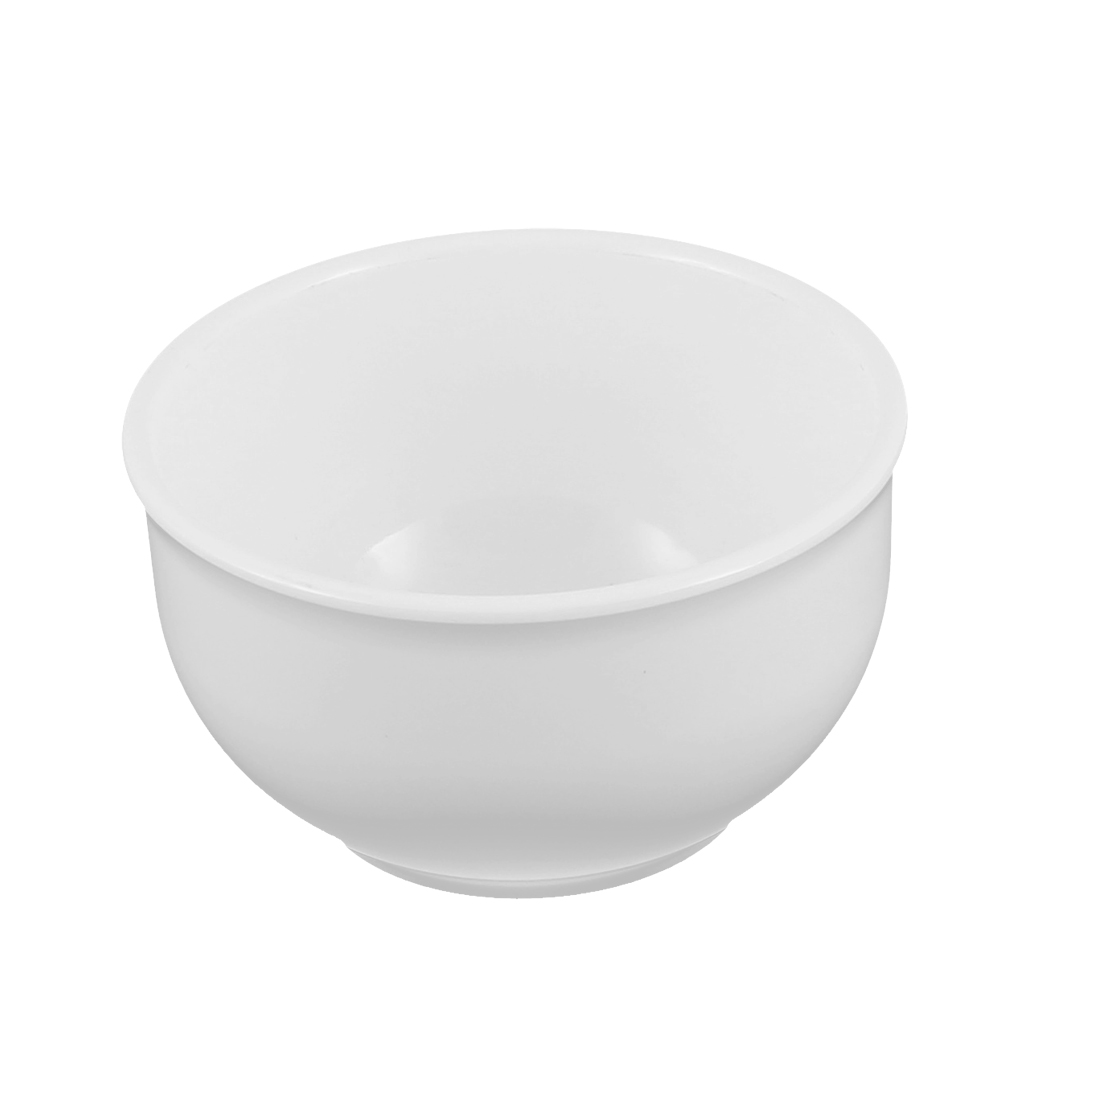 Restaurant Kitchen Plastic Round Rice Serving Bowl White